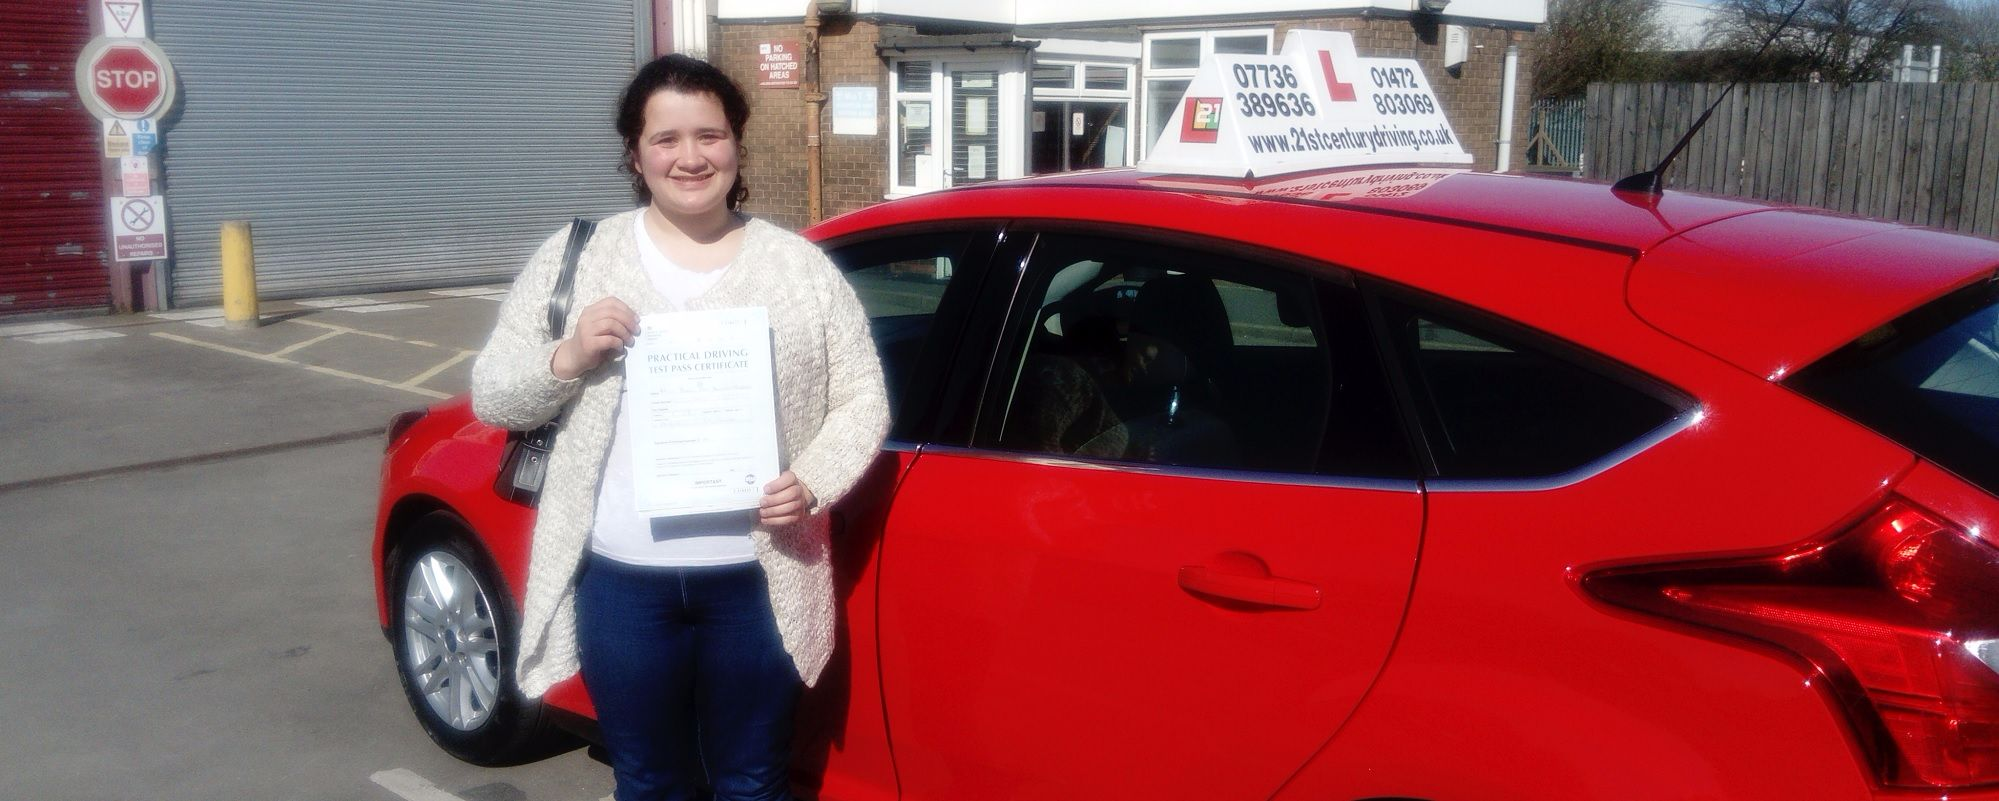 Driving lessons in Grimsby with 21st Century Driving School